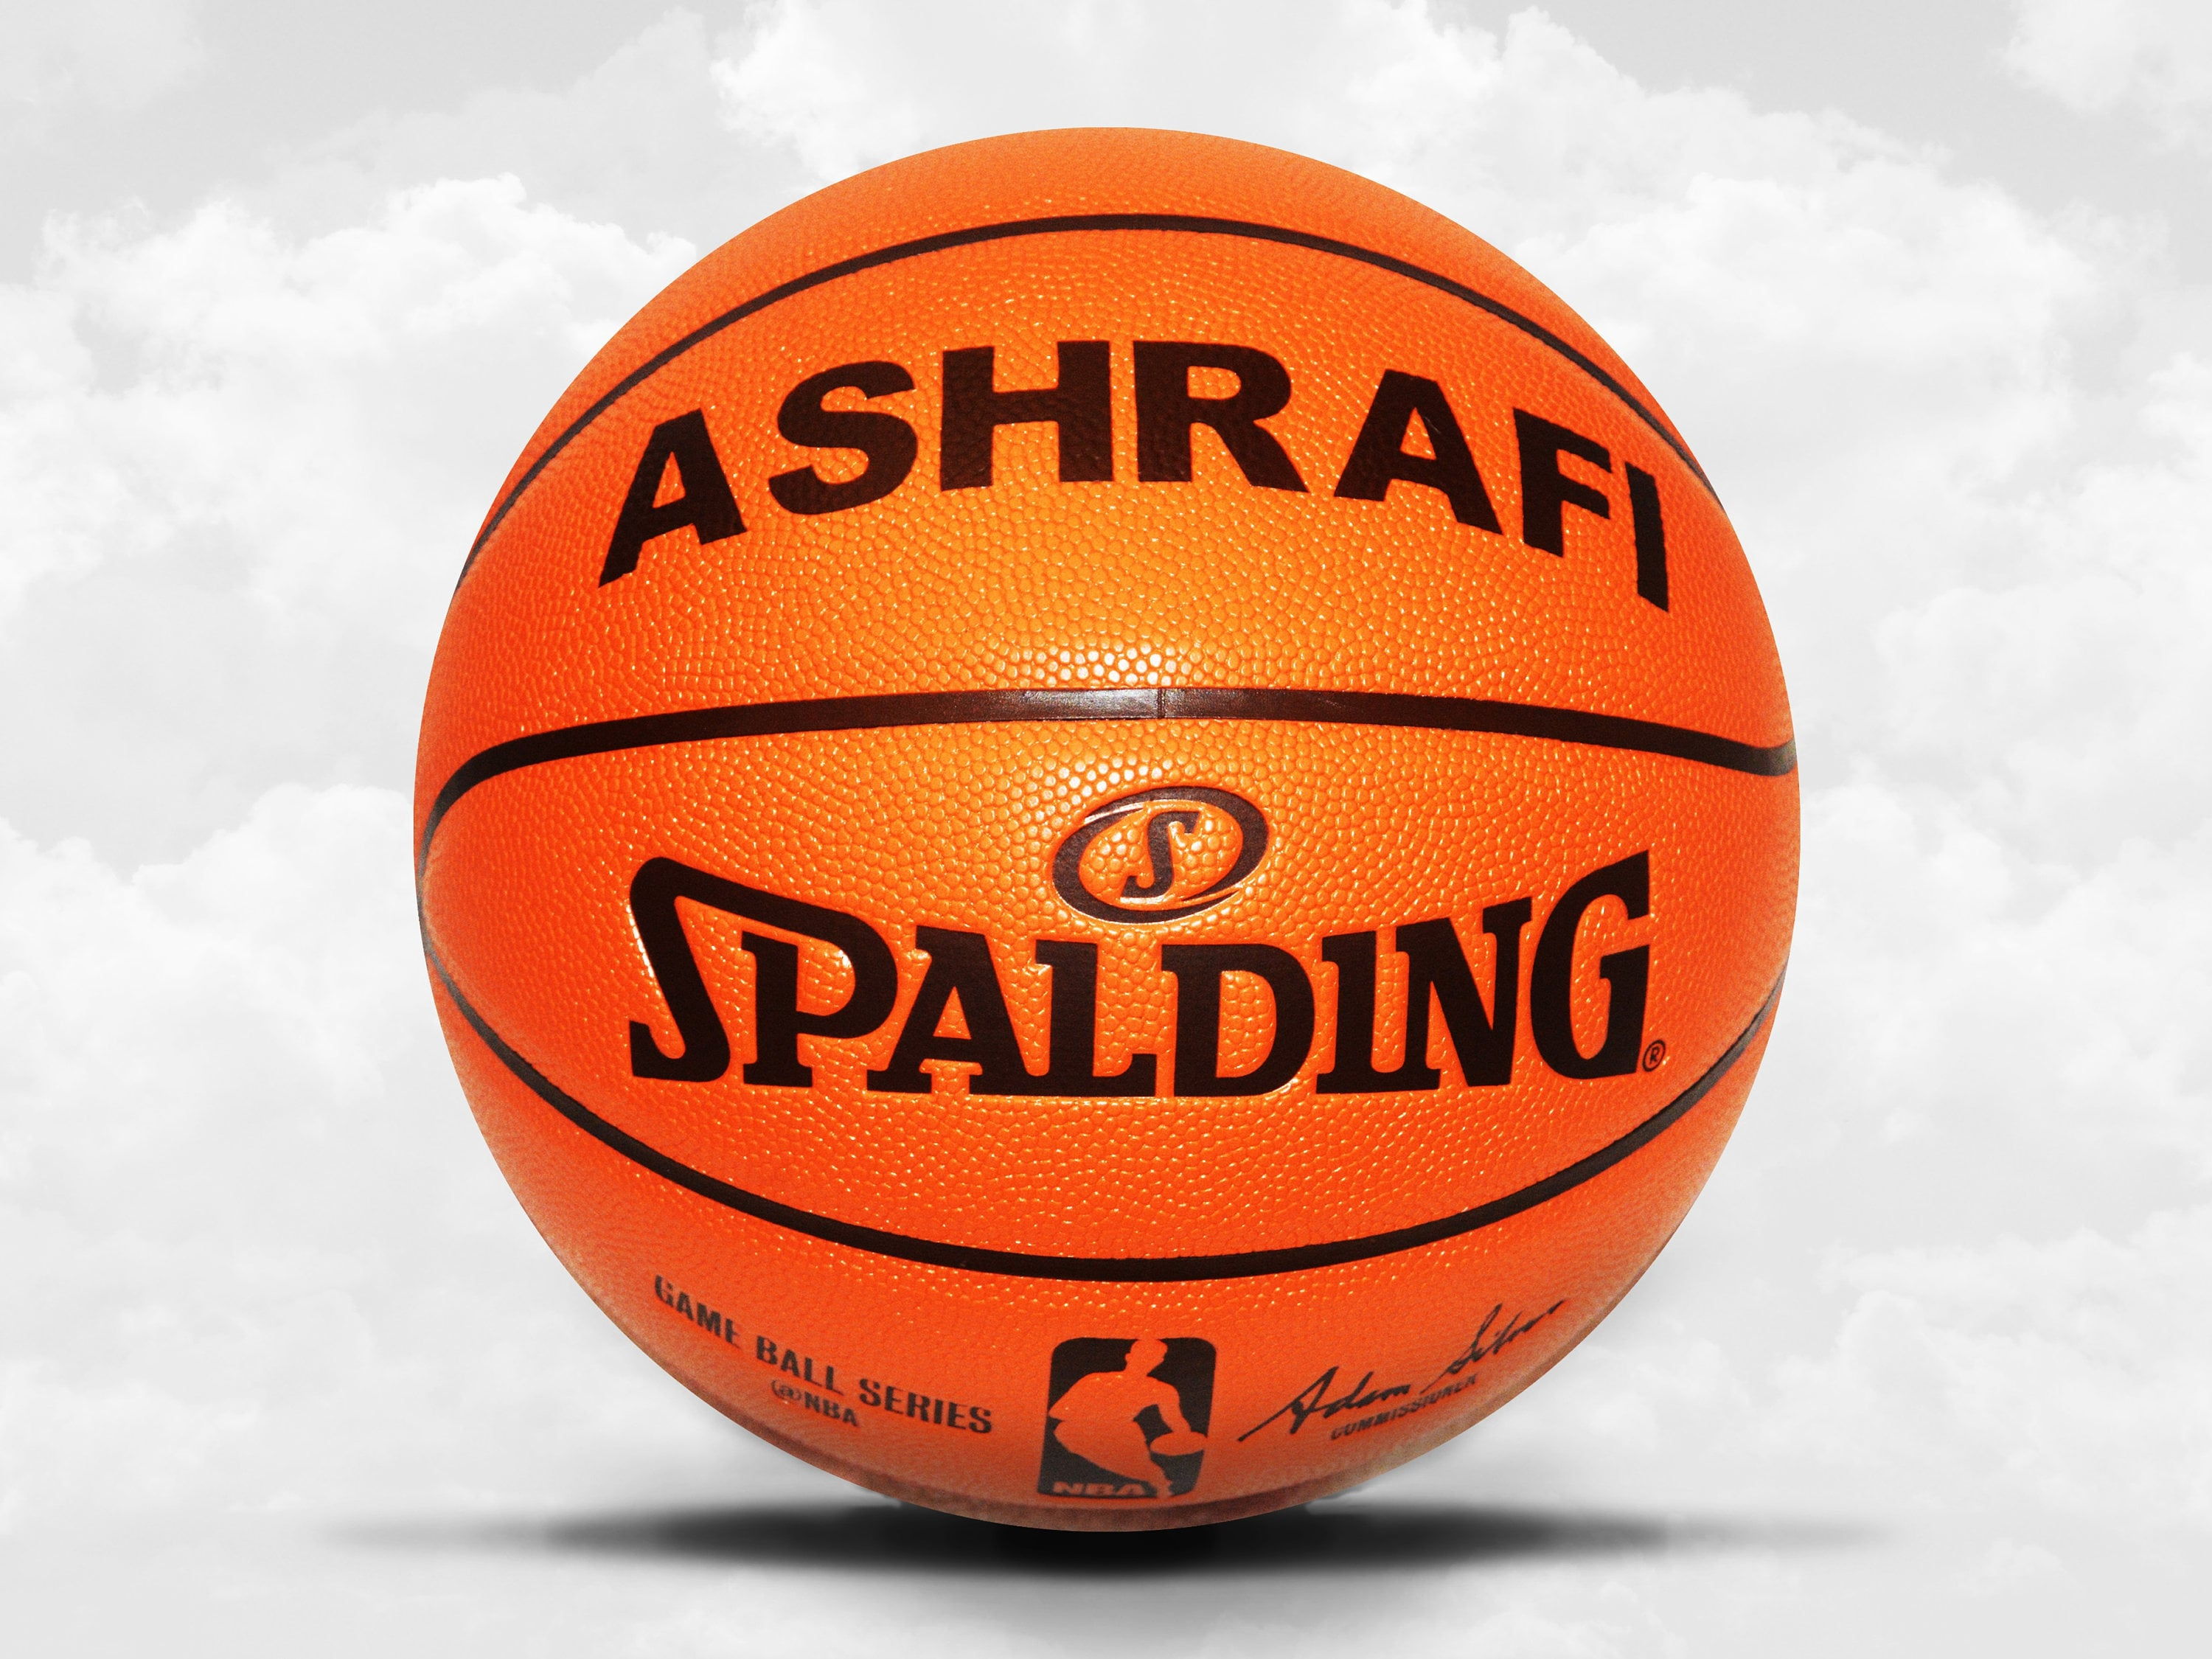 89dbbd026b5 Customized Personalized Basketball Spalding Replica Indoor/Outdoor ...